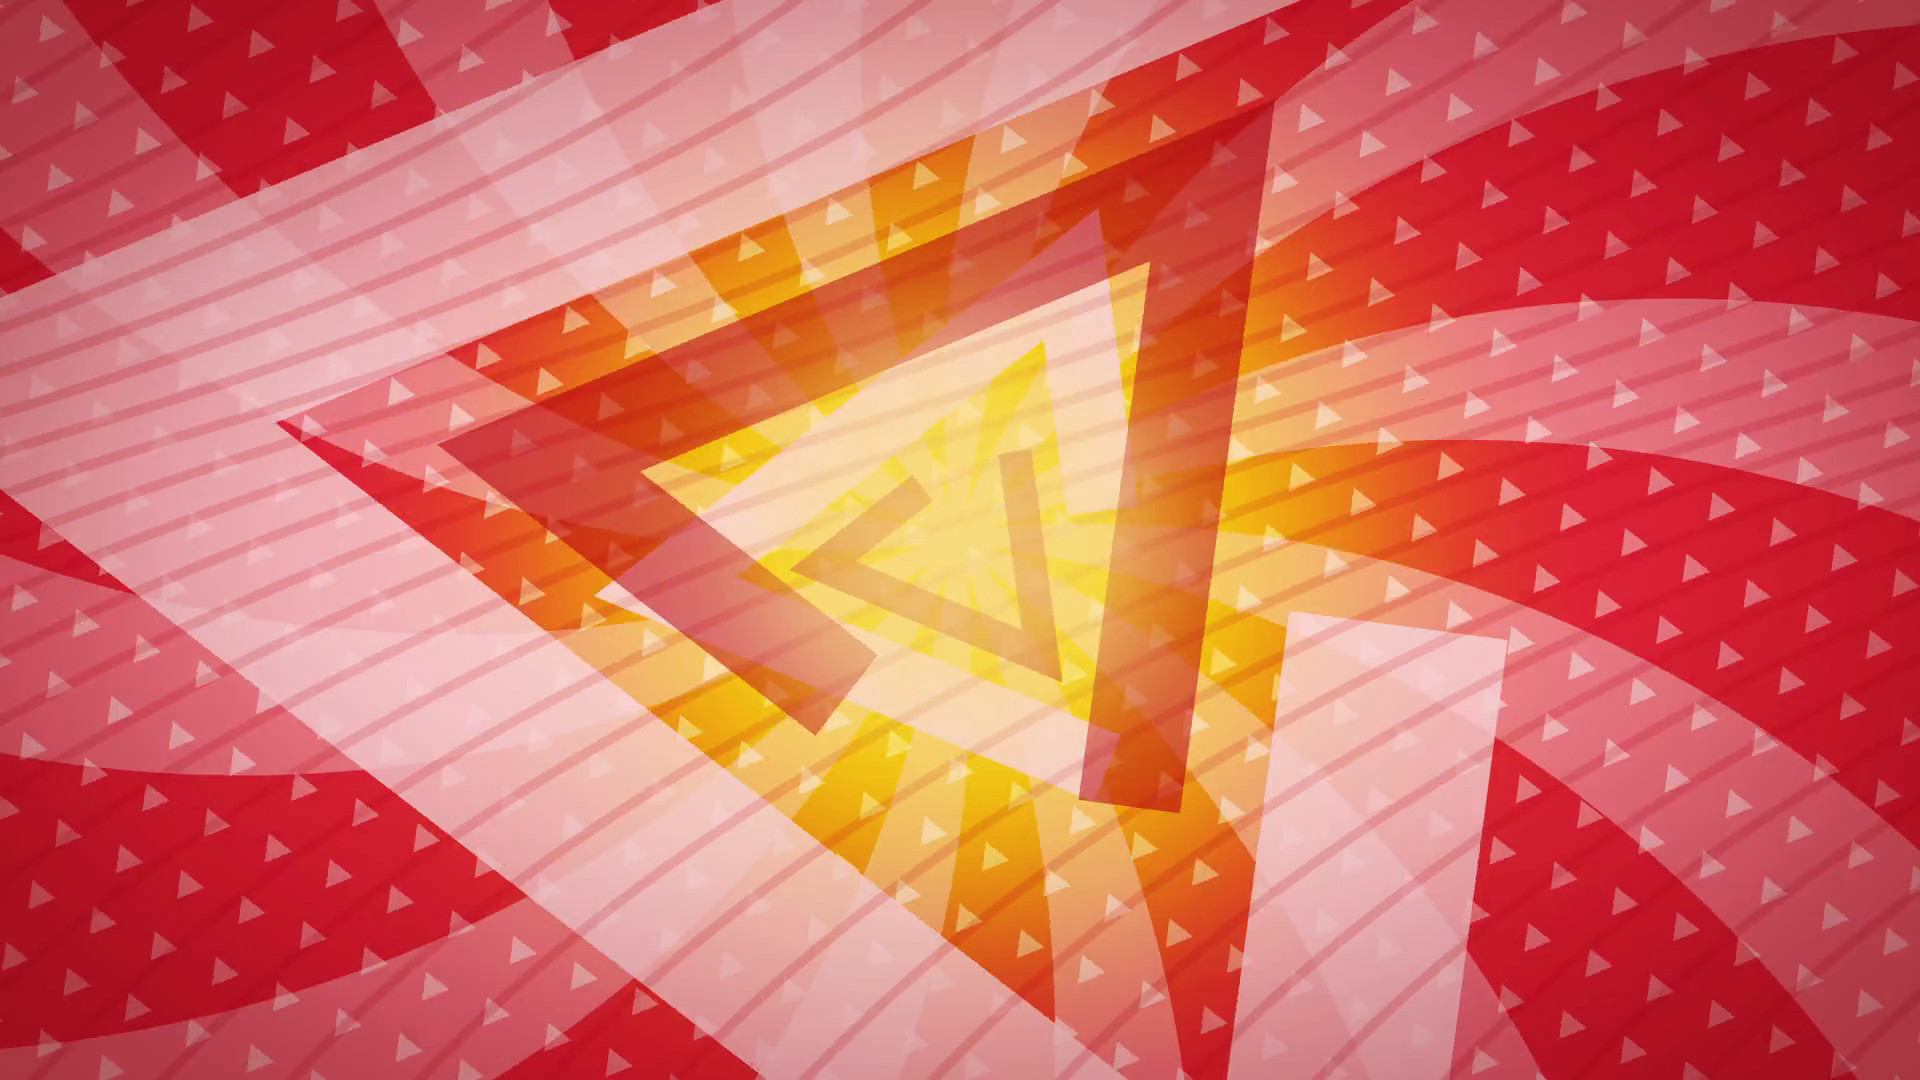 Subscription Library Red triangles Abstract Background Animation loop for  your logo or text. Technology Background. Futuristic